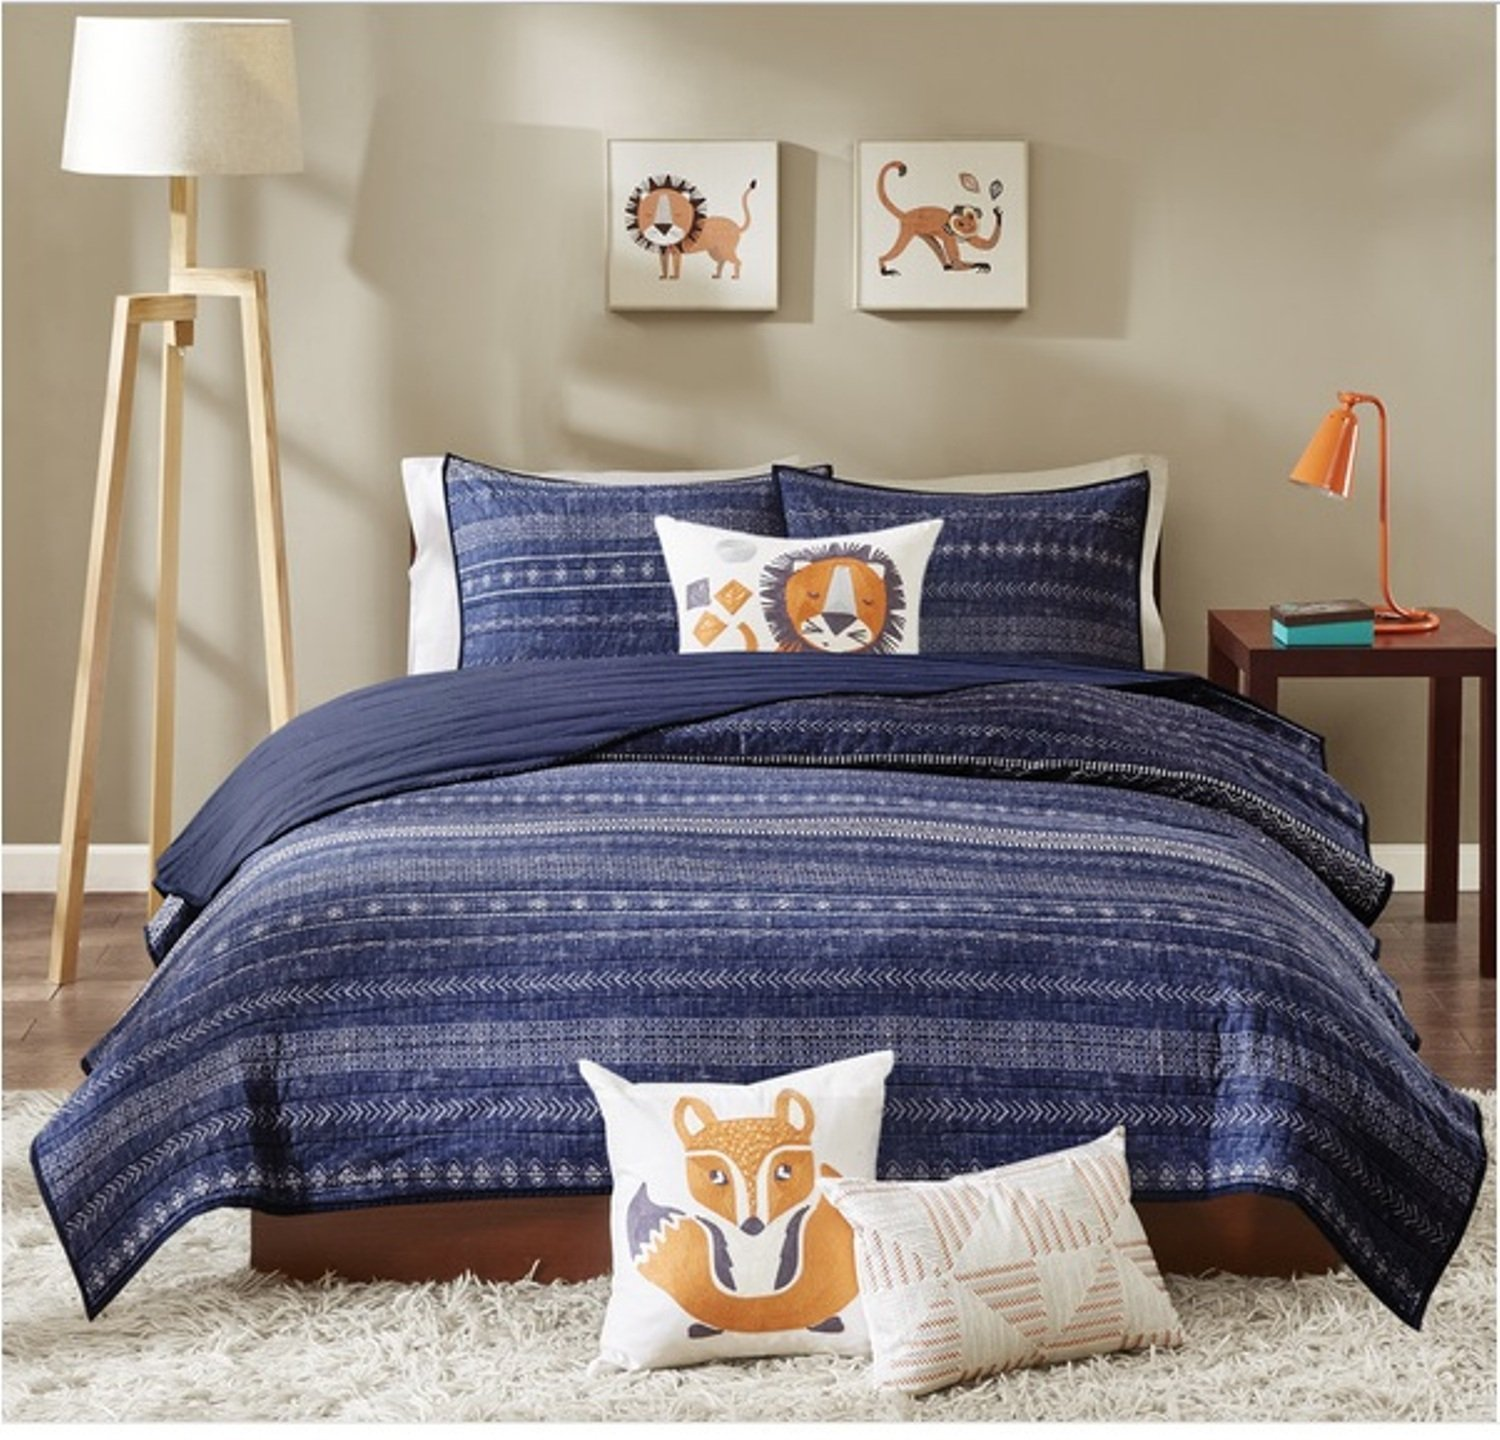 3 Piece Unique Tribal Inspired Motif Coverlet Set Twin Size, Featuring Playful Embroidered Lion Solid Design Comfortable Bedding, Novelty Contemporary Fun Unisex Kids Bedroom Decoration, Blue, Multi